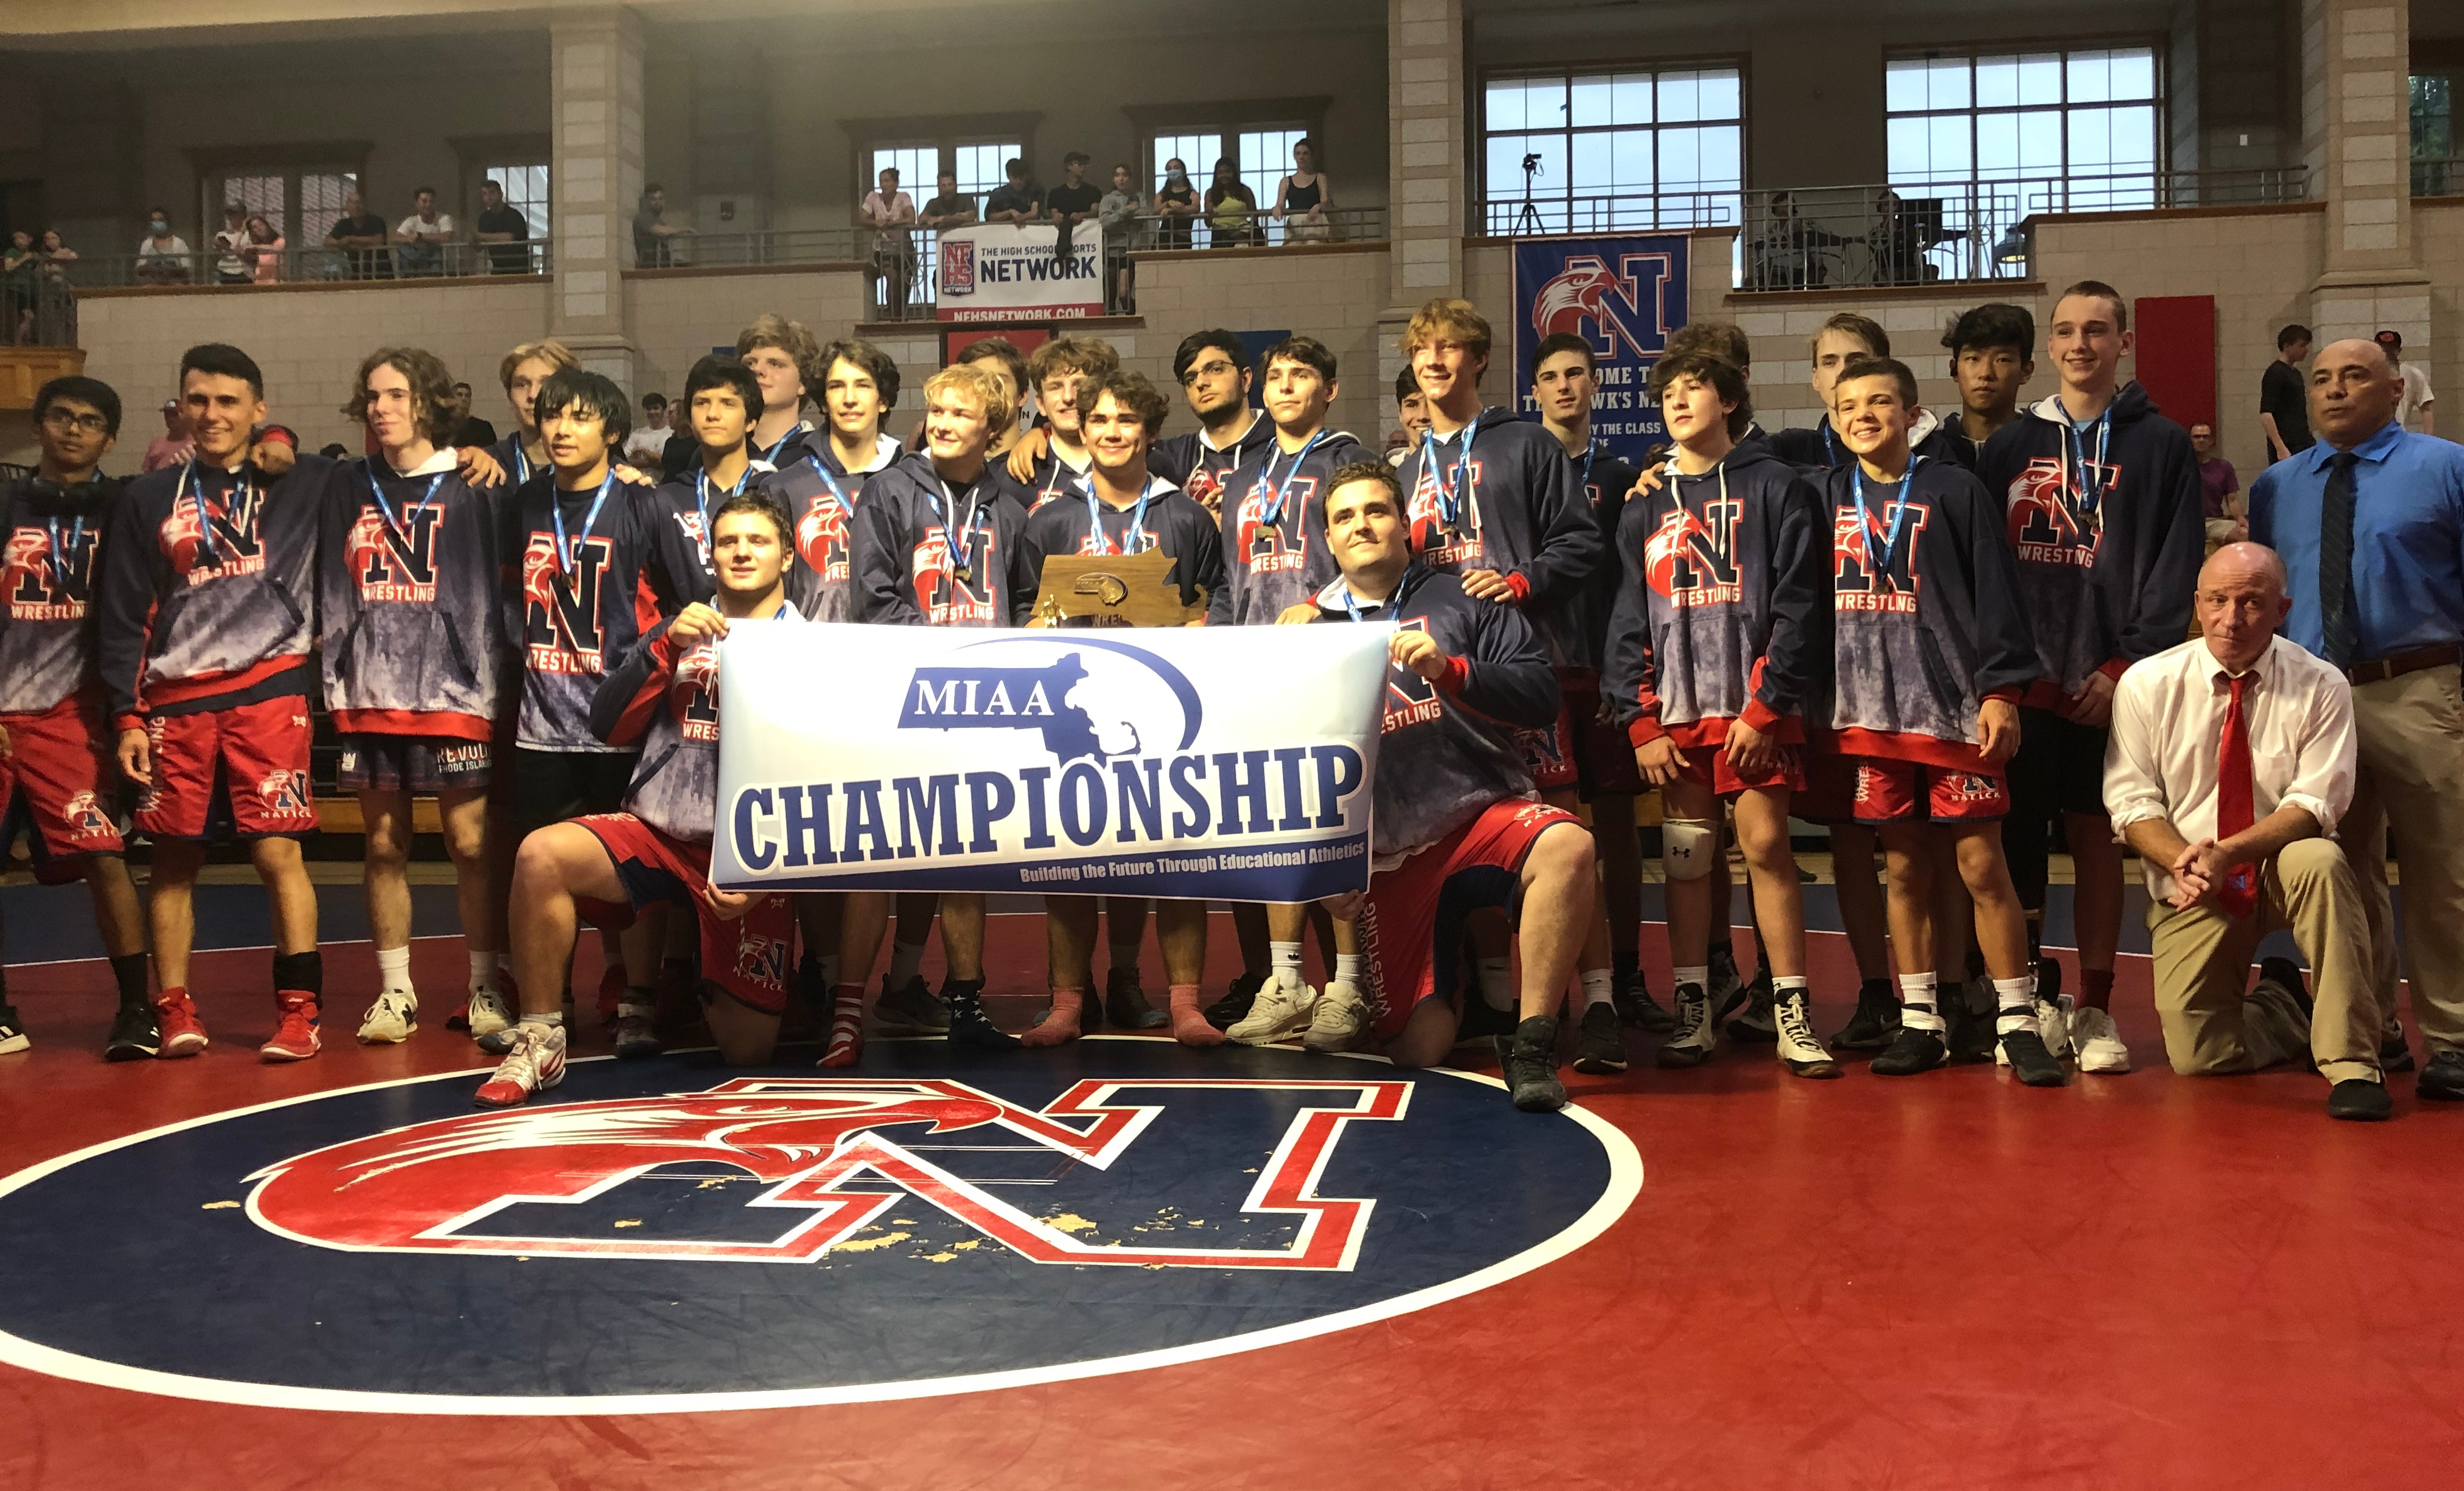 Natick's wrestling team concluded a 14-0 season with the MIAA Division 2 double-meet championship.